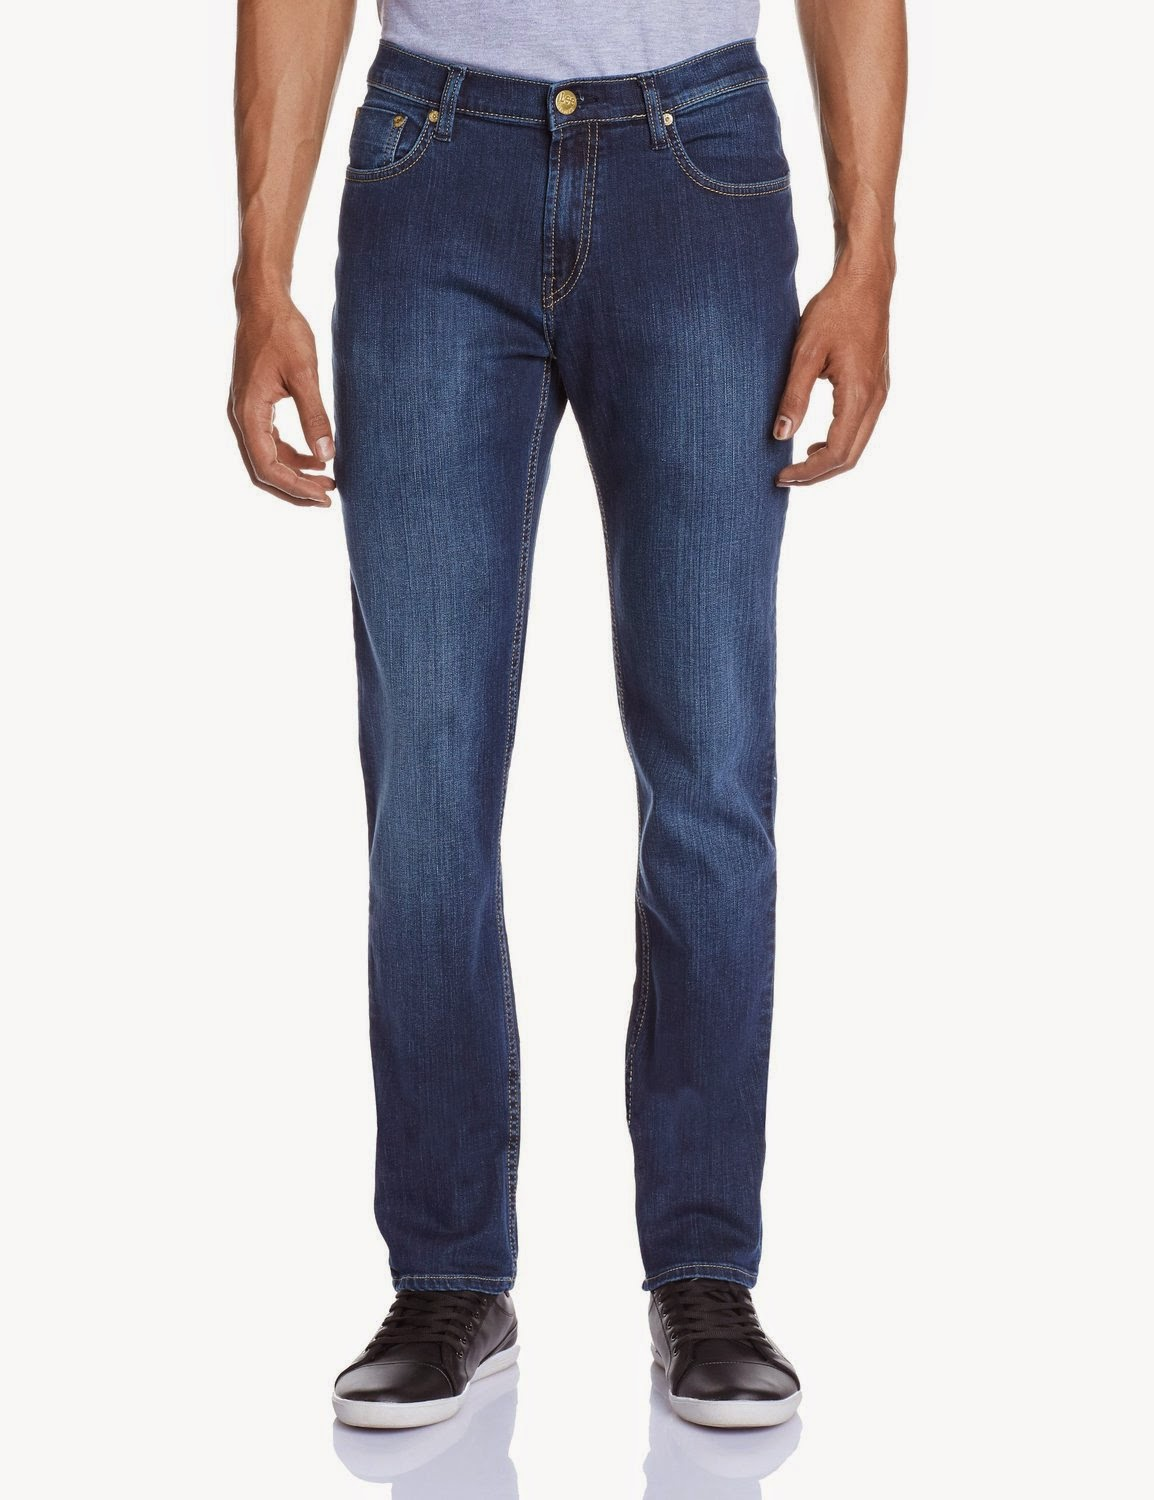 Amazon: Buy LEE Jeans worth Rs. 2299 at Rs.1150 only